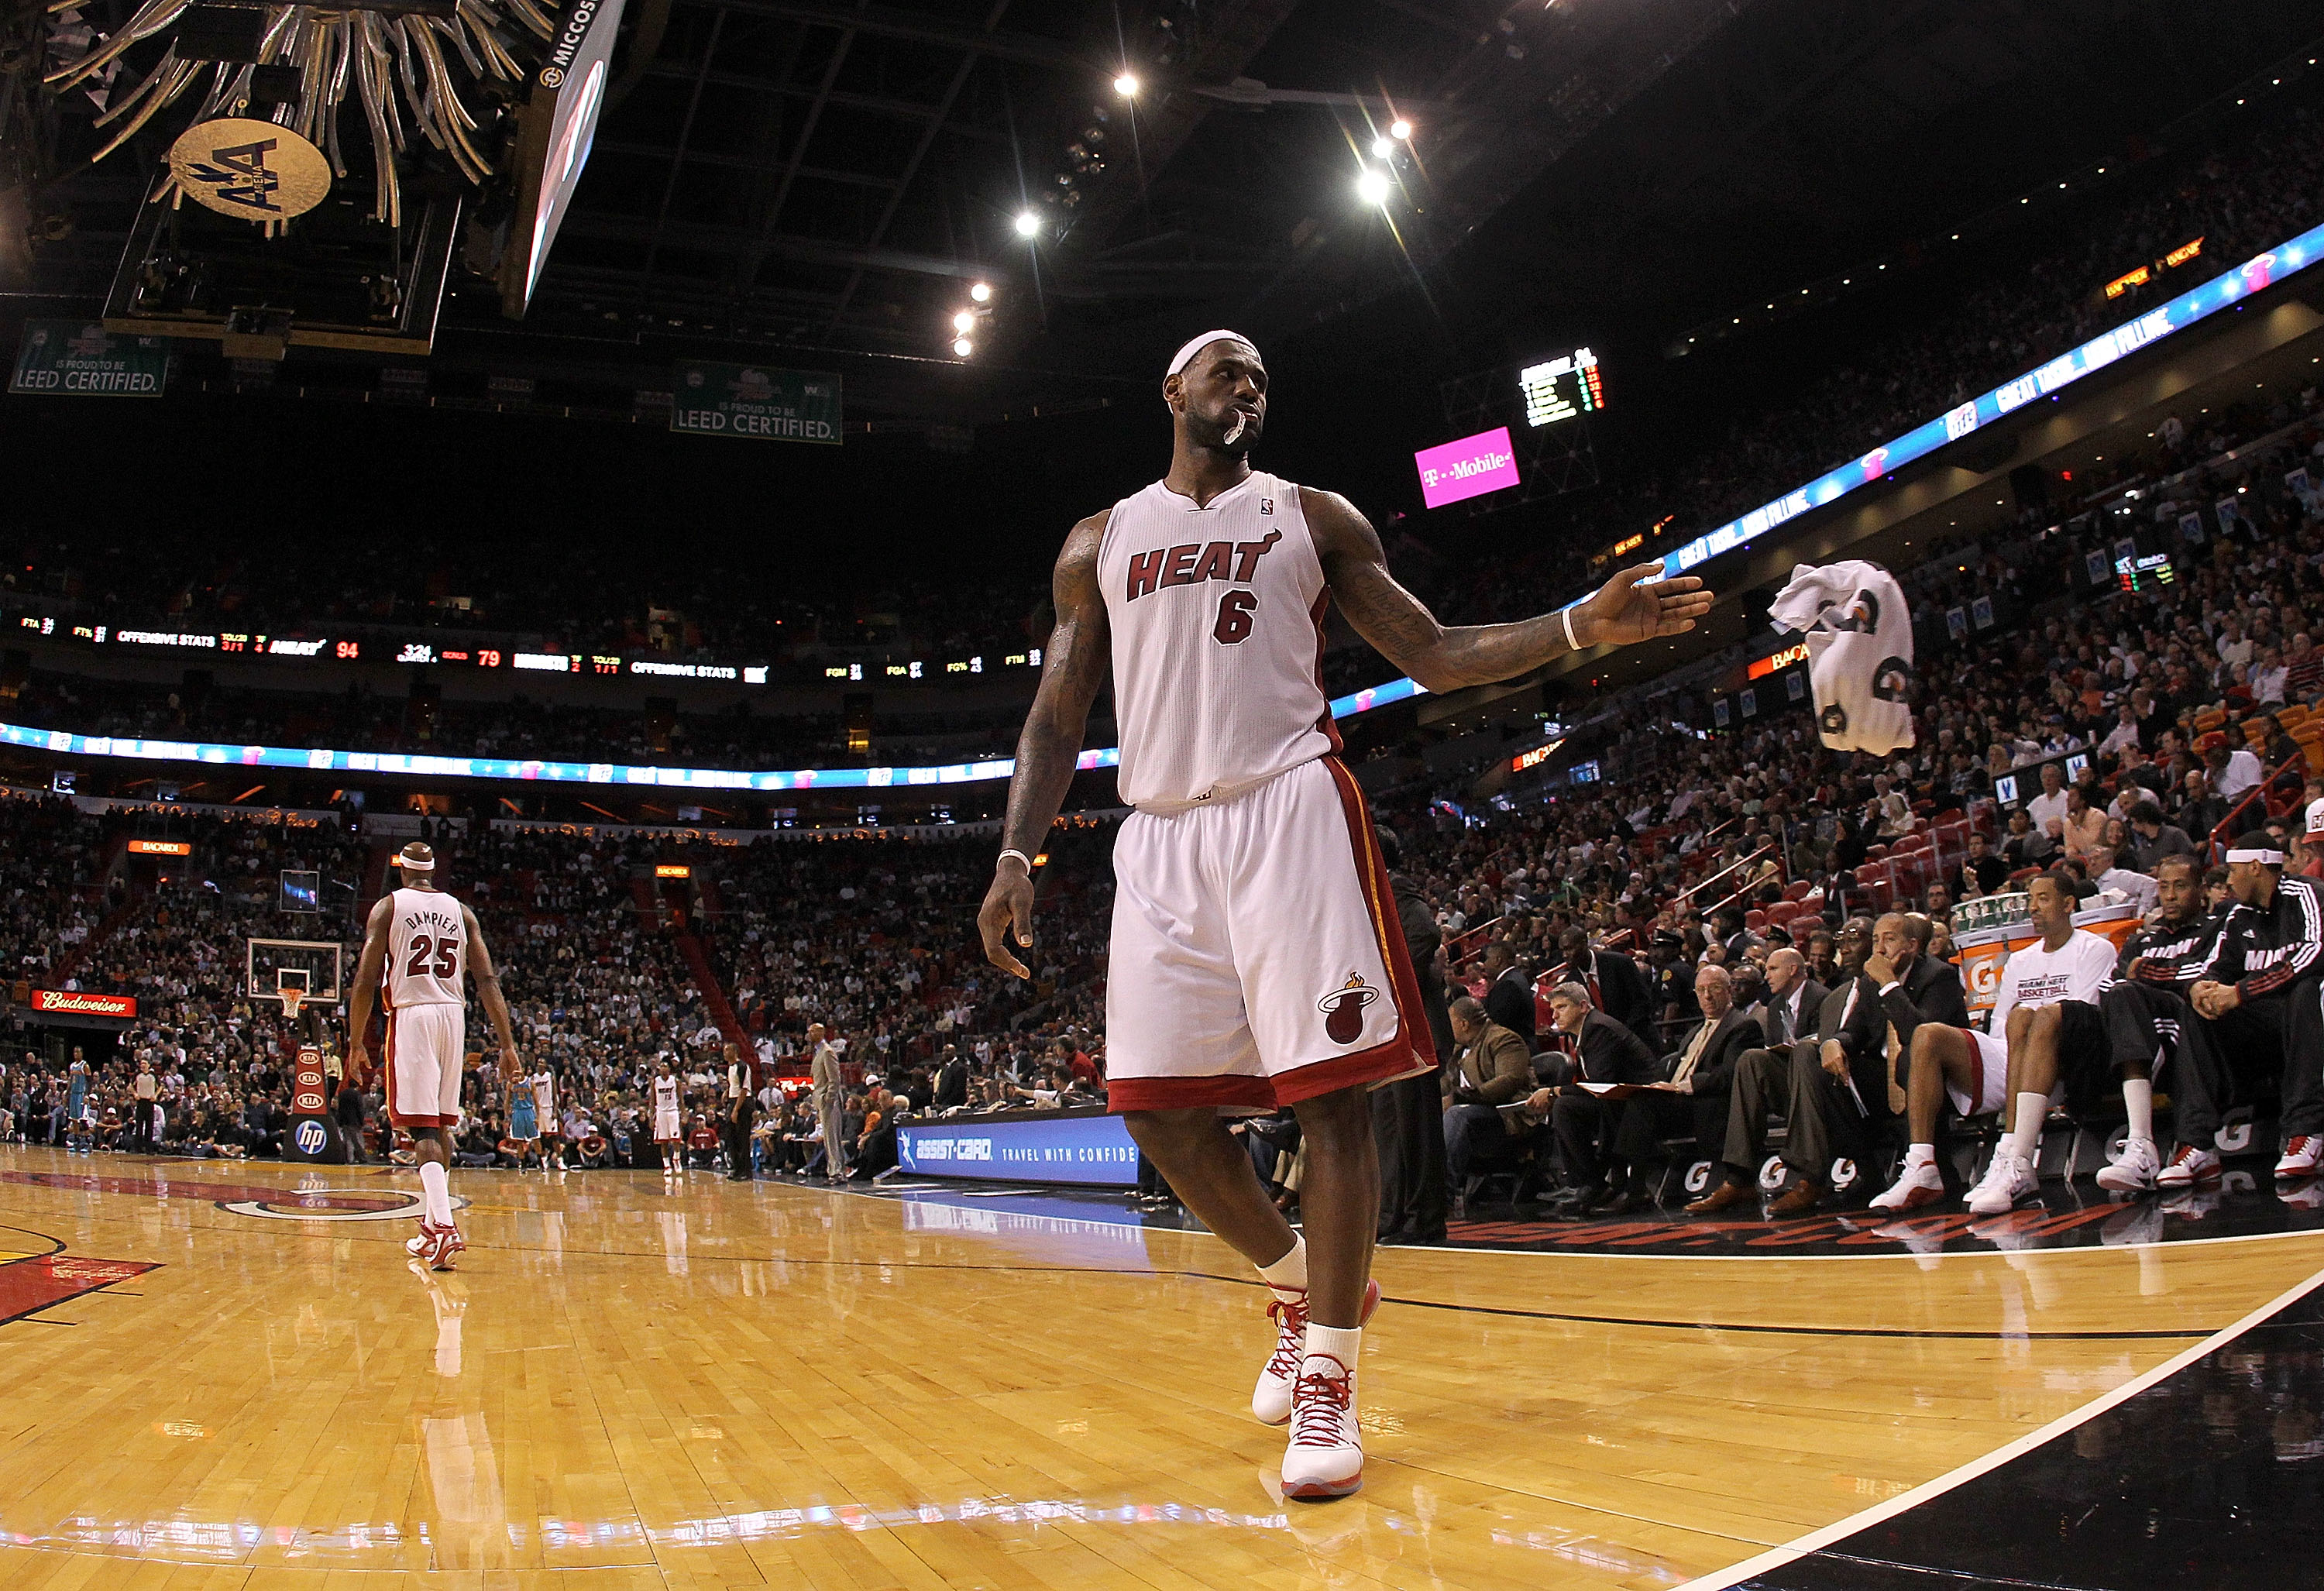 MIAMI, FL - DECEMBER 13:  LeBron James #6 of the Miami Heat waits during a foul shot during a game against the New Orleans Hornets at American Airlines Arena on December 13, 2010 in Miami, Florida. NOTE TO USER: User expressly acknowledges and agrees that